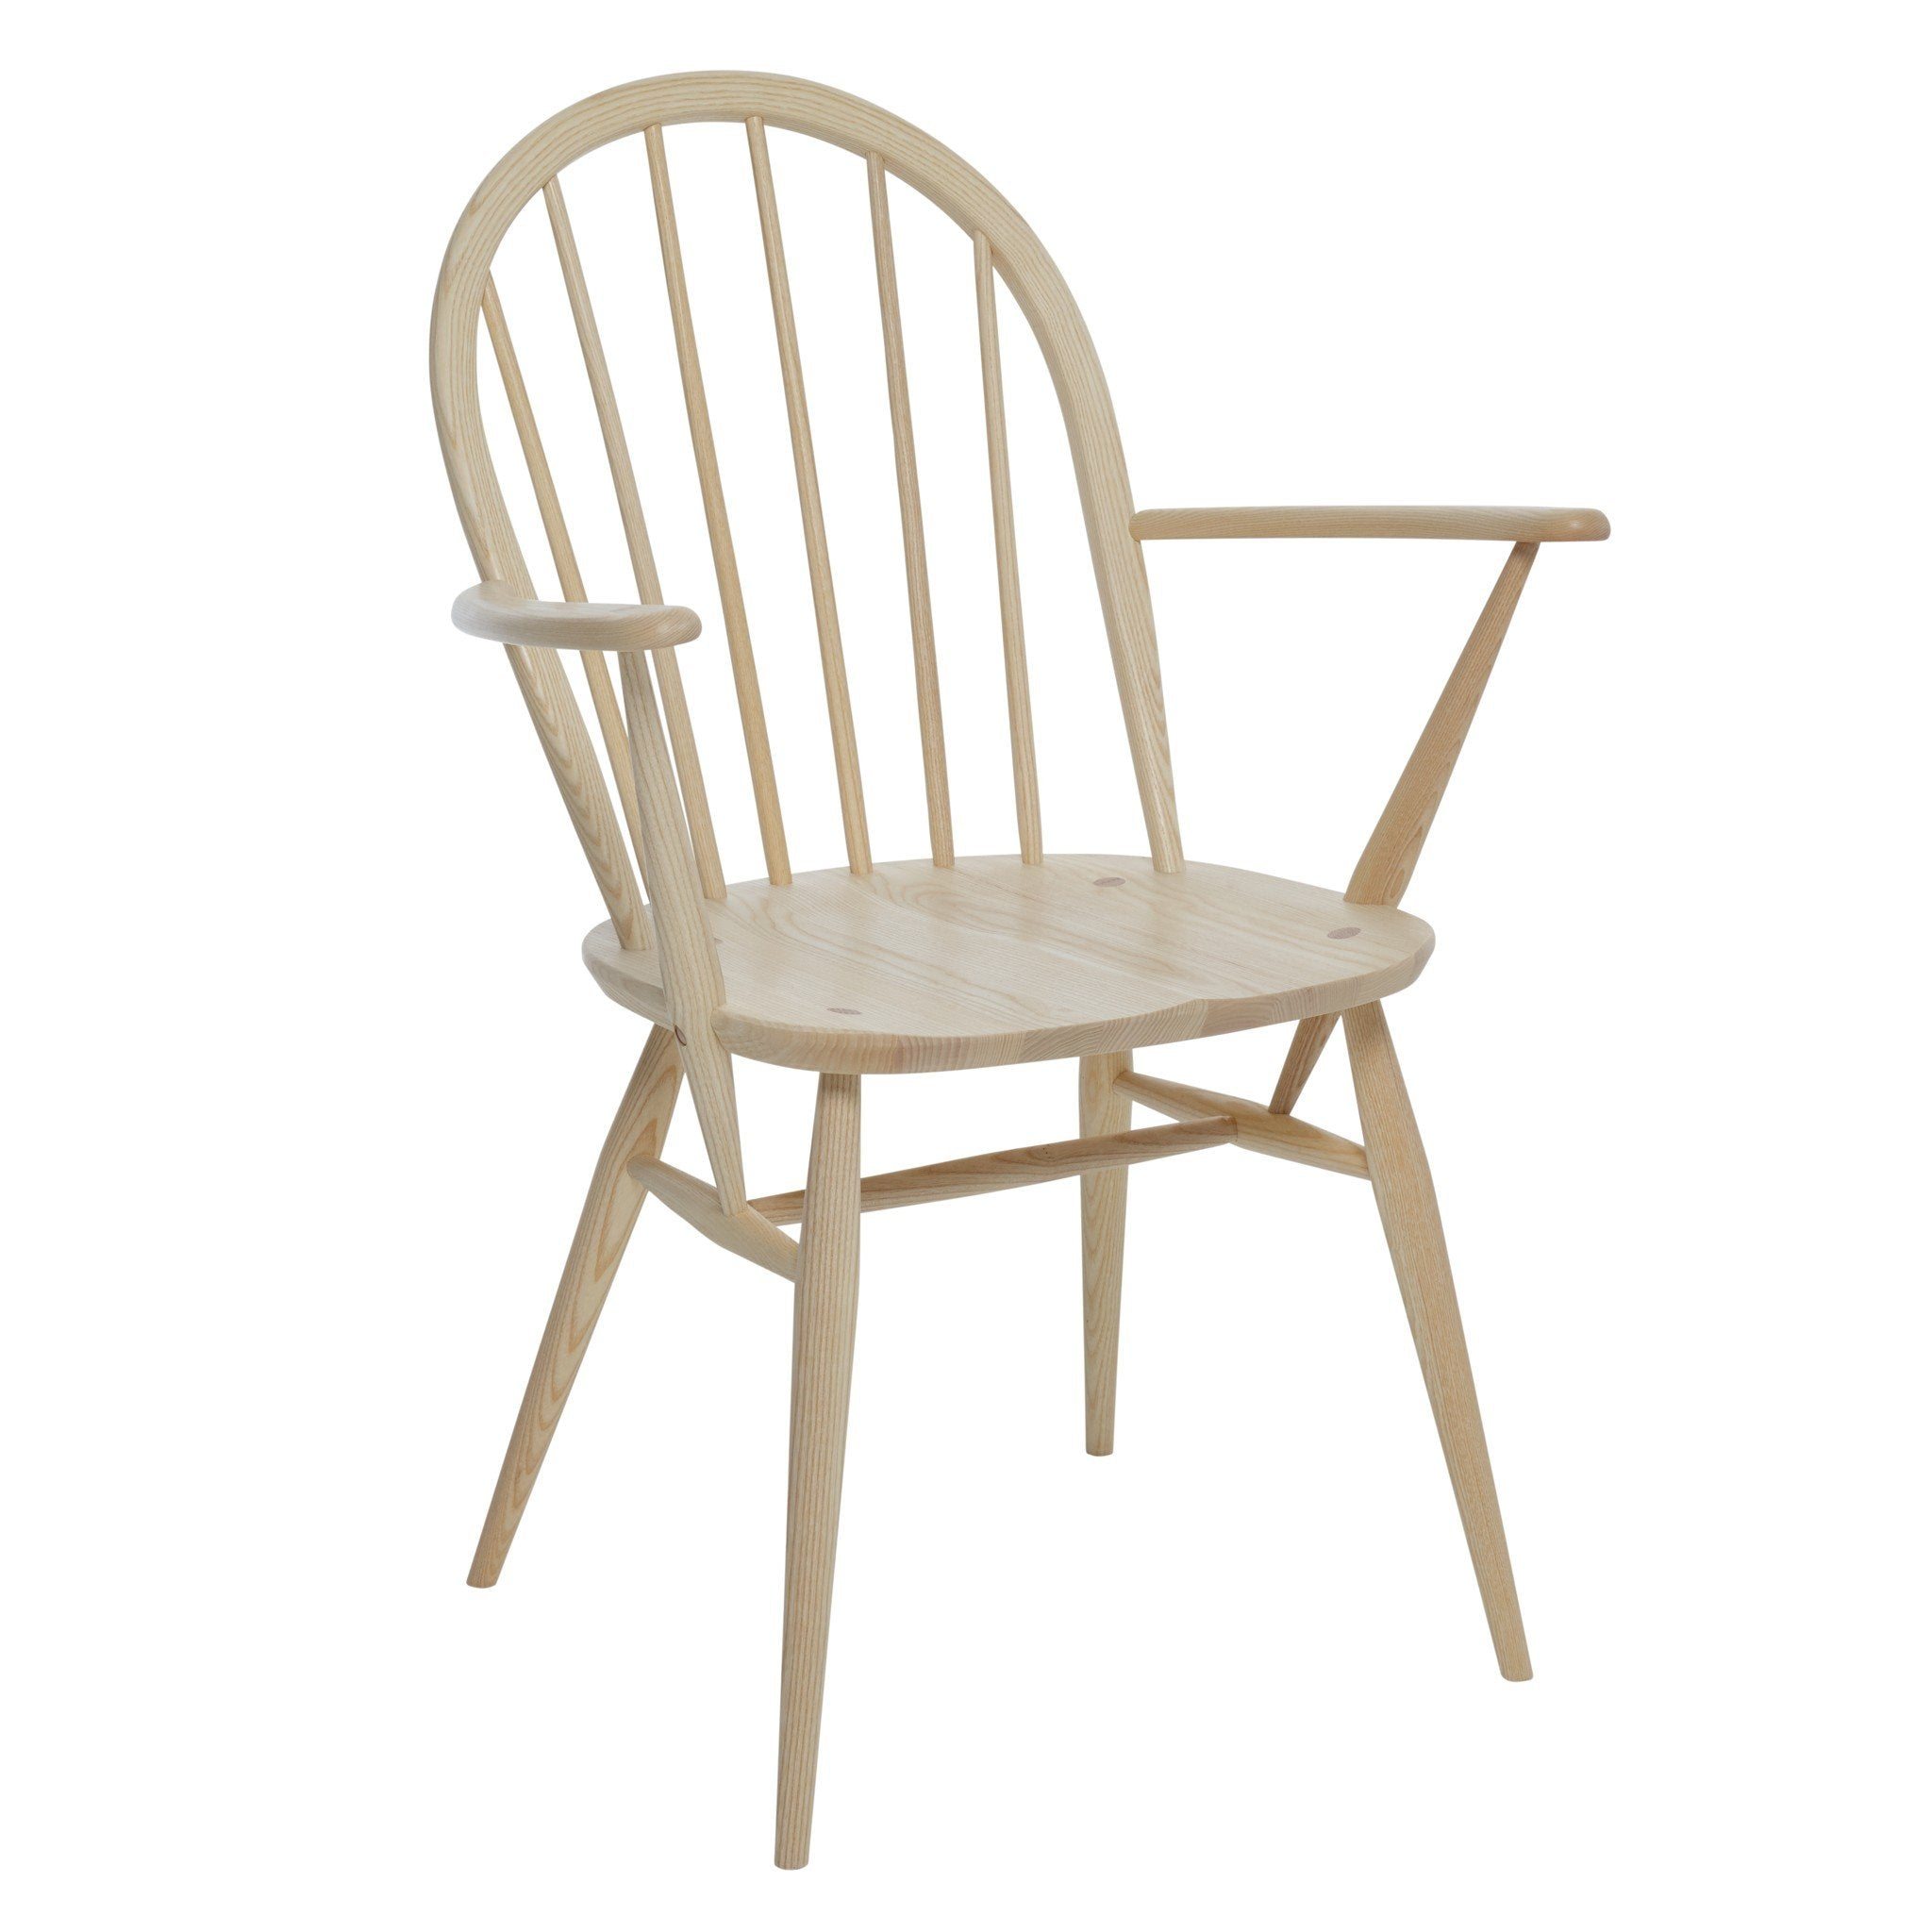 Originals Windsor Armchair By Ercol U2014 Haus®